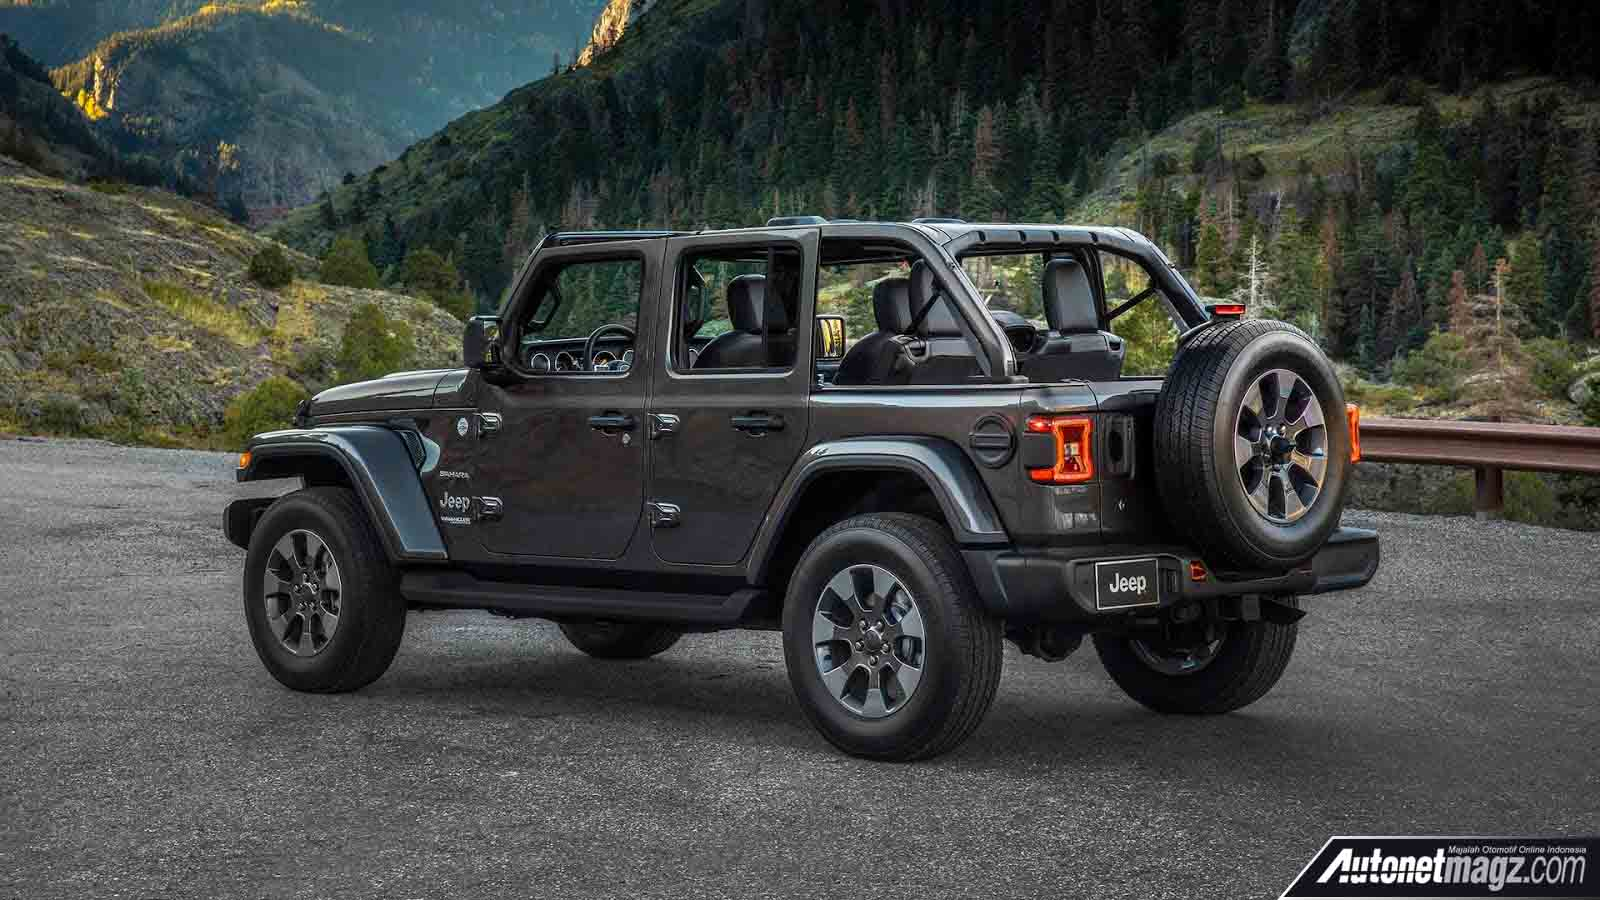 jeep wrangler 2018 long soft top autonetmagz review mobil dan motor baru indonesia. Black Bedroom Furniture Sets. Home Design Ideas